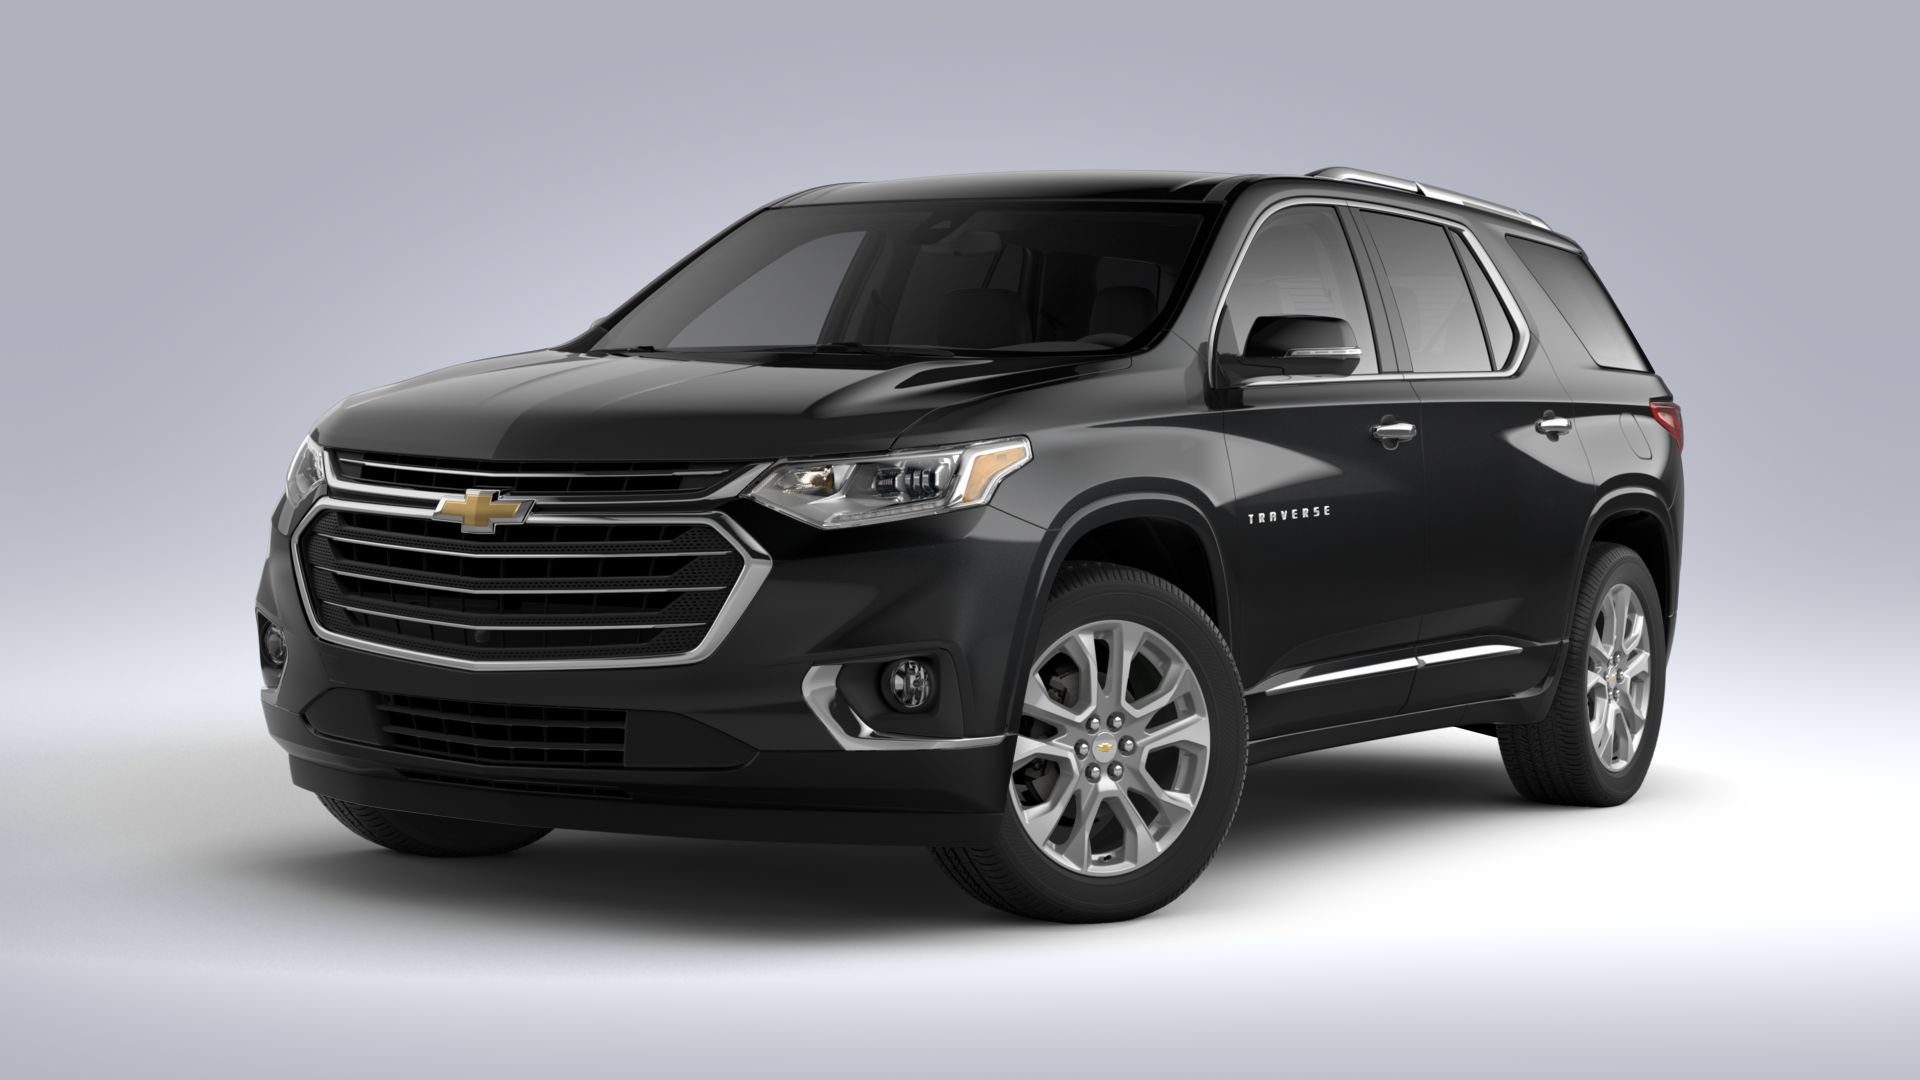 New 2020 Chevrolet Traverse Premier FRONT WHEEL DRIVE SUV